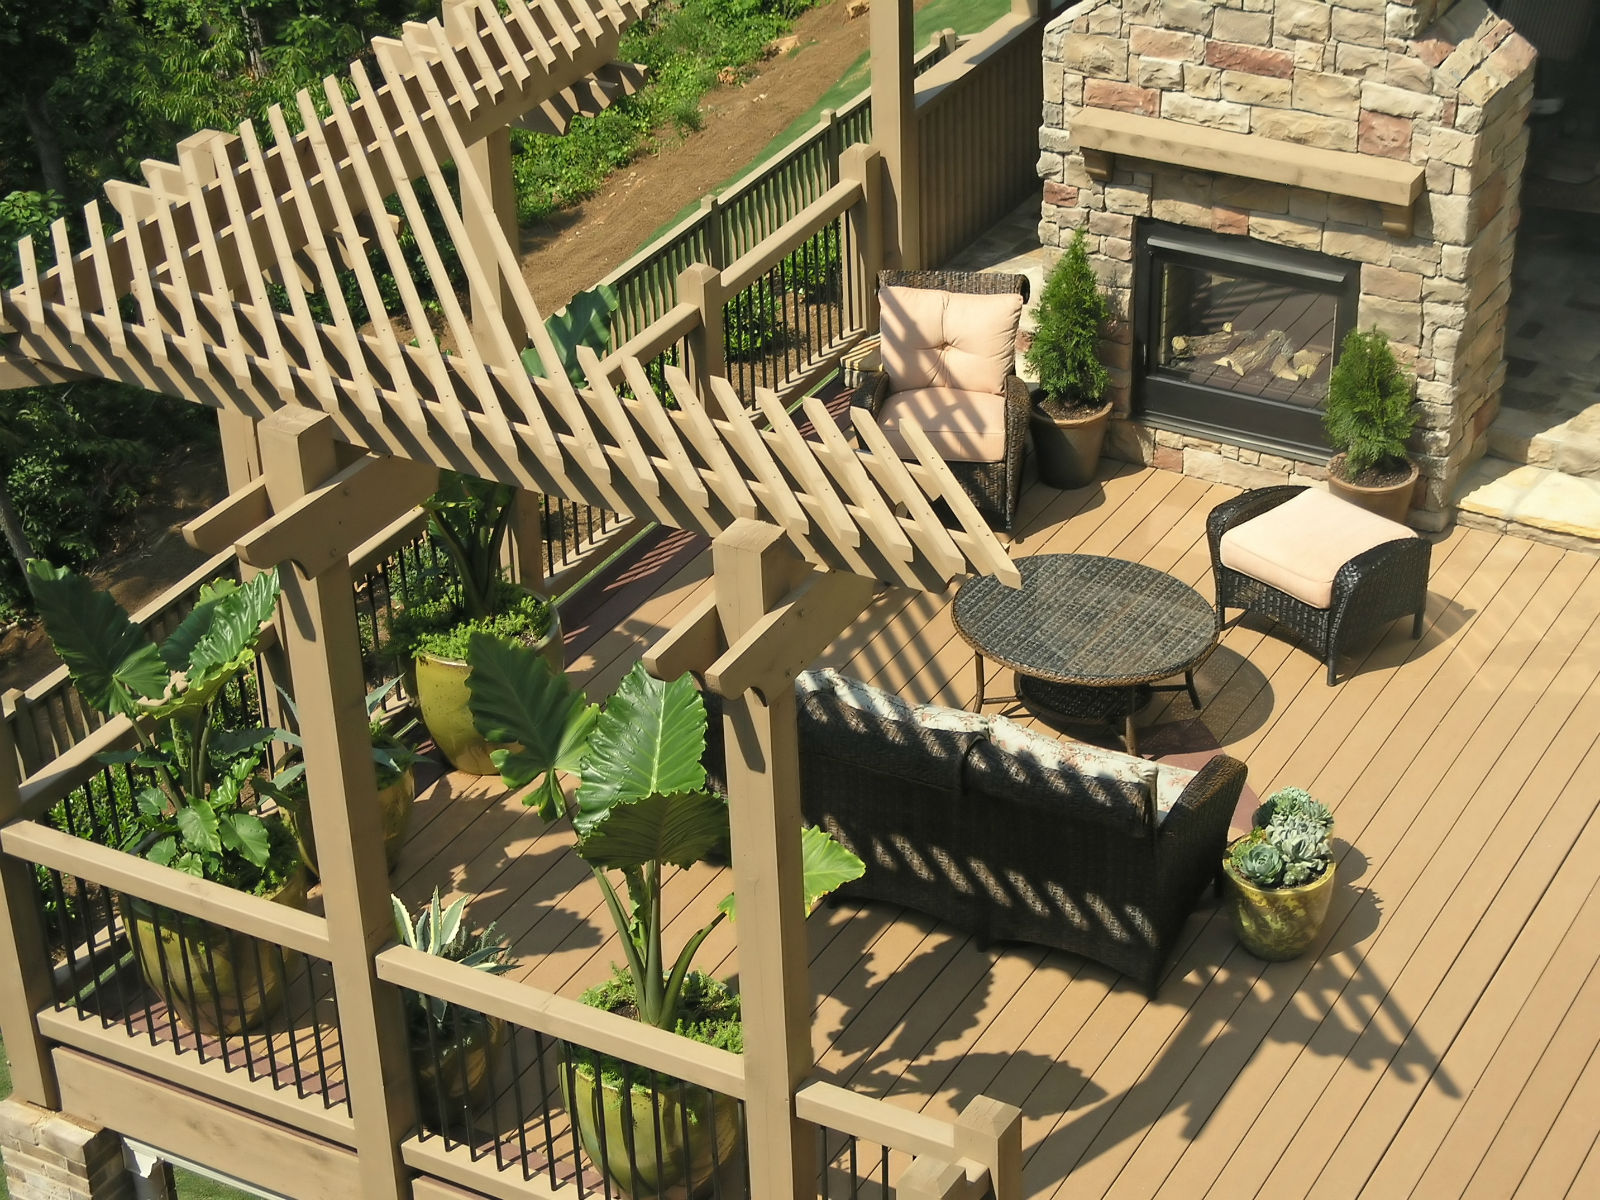 Landscaping Ideas Top Outdoor Living Trends for 2012